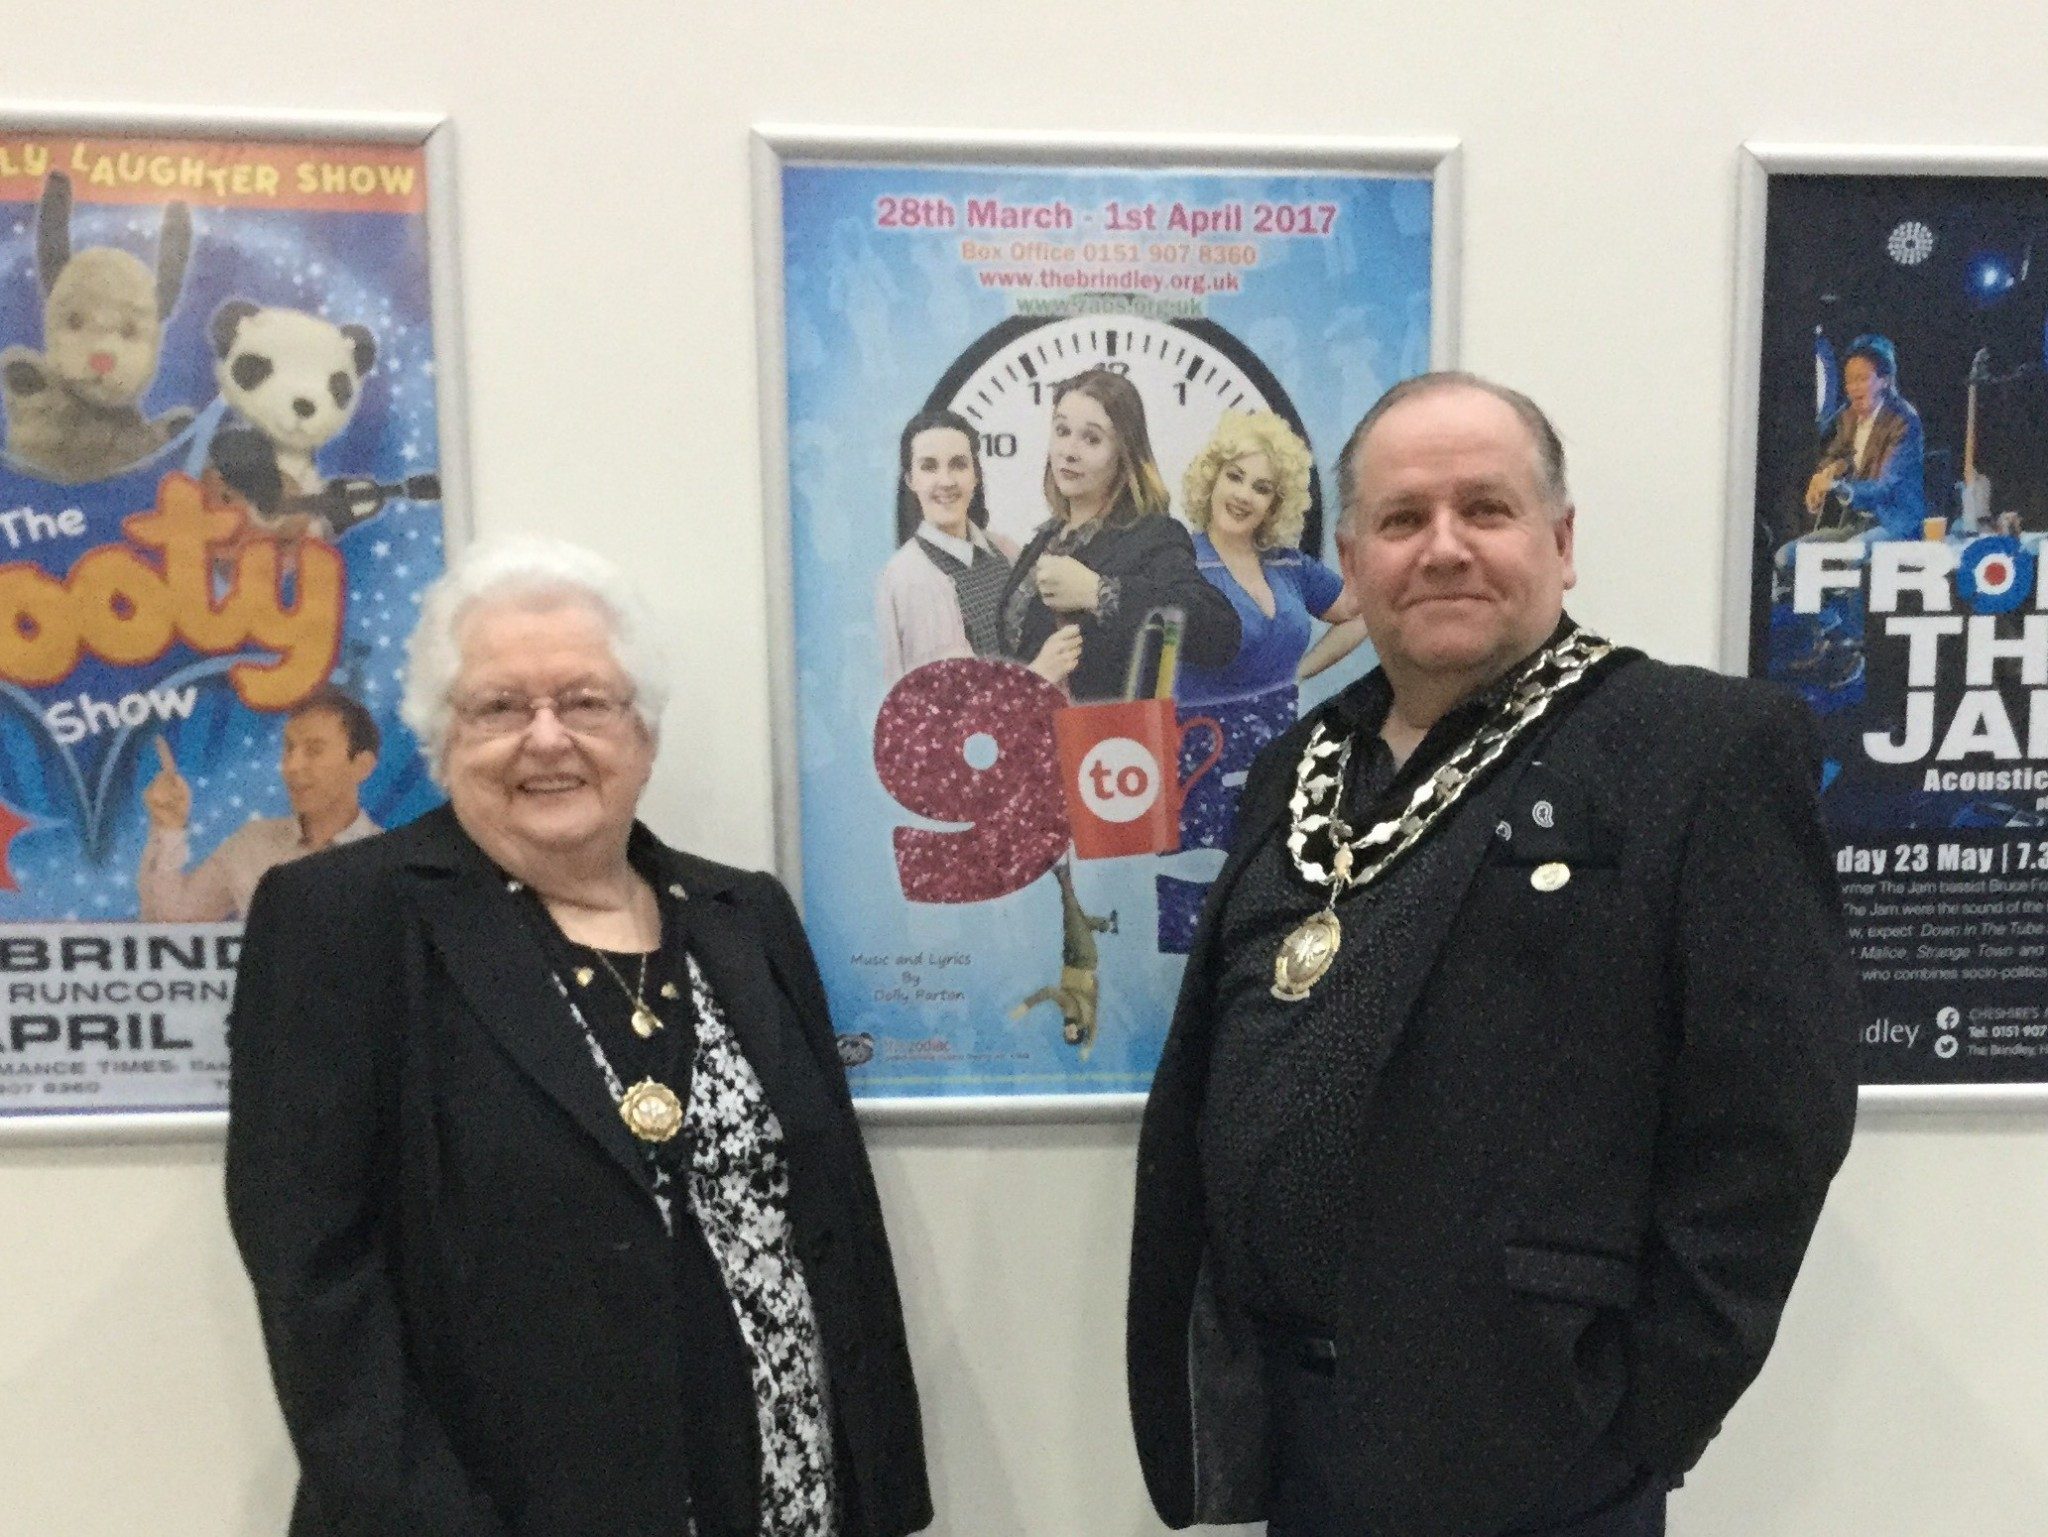 Phot of Mayor and Consort